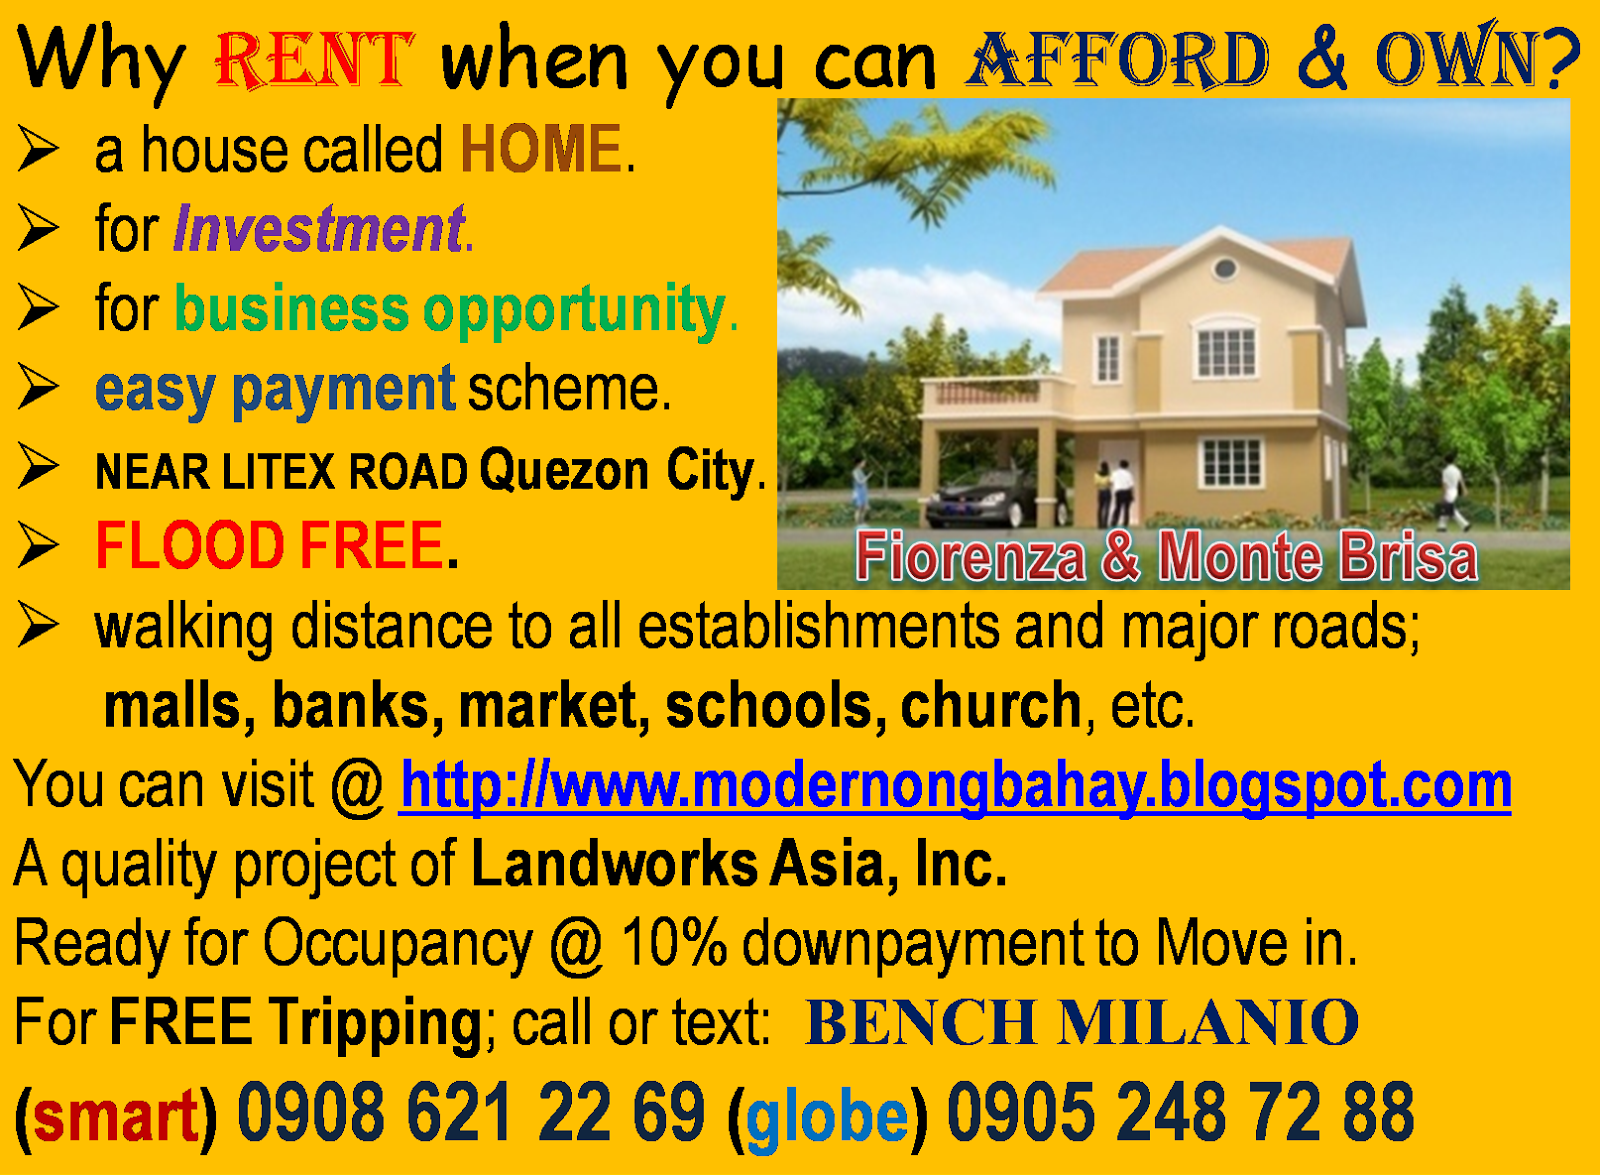 WHY RENT IF YOU CAN AFFORD TO OWN!